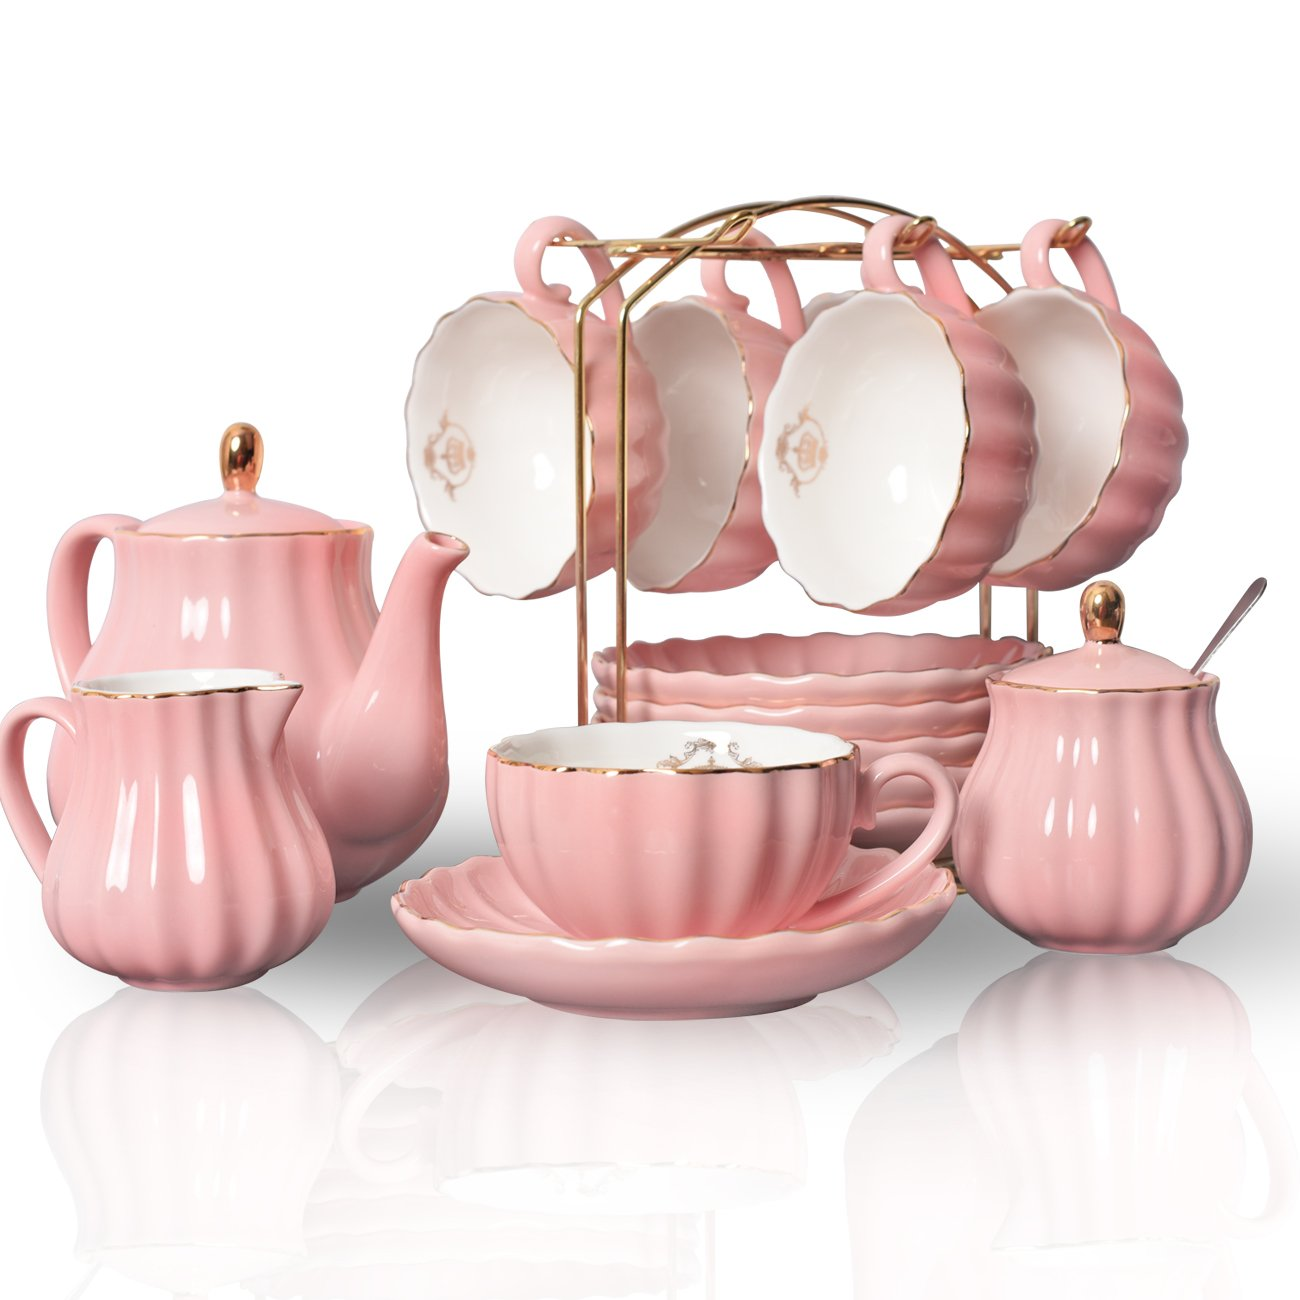 Porcelain Tea Sets British Royal Series, 8 OZ Cups& Saucer Service for 6, with Teapot Sugar Bowl Cream Pitcher Teaspoons and tea strainer for Tea/Coffee, Pukka Home (Young Pink) by Pukka Home (Image #1)